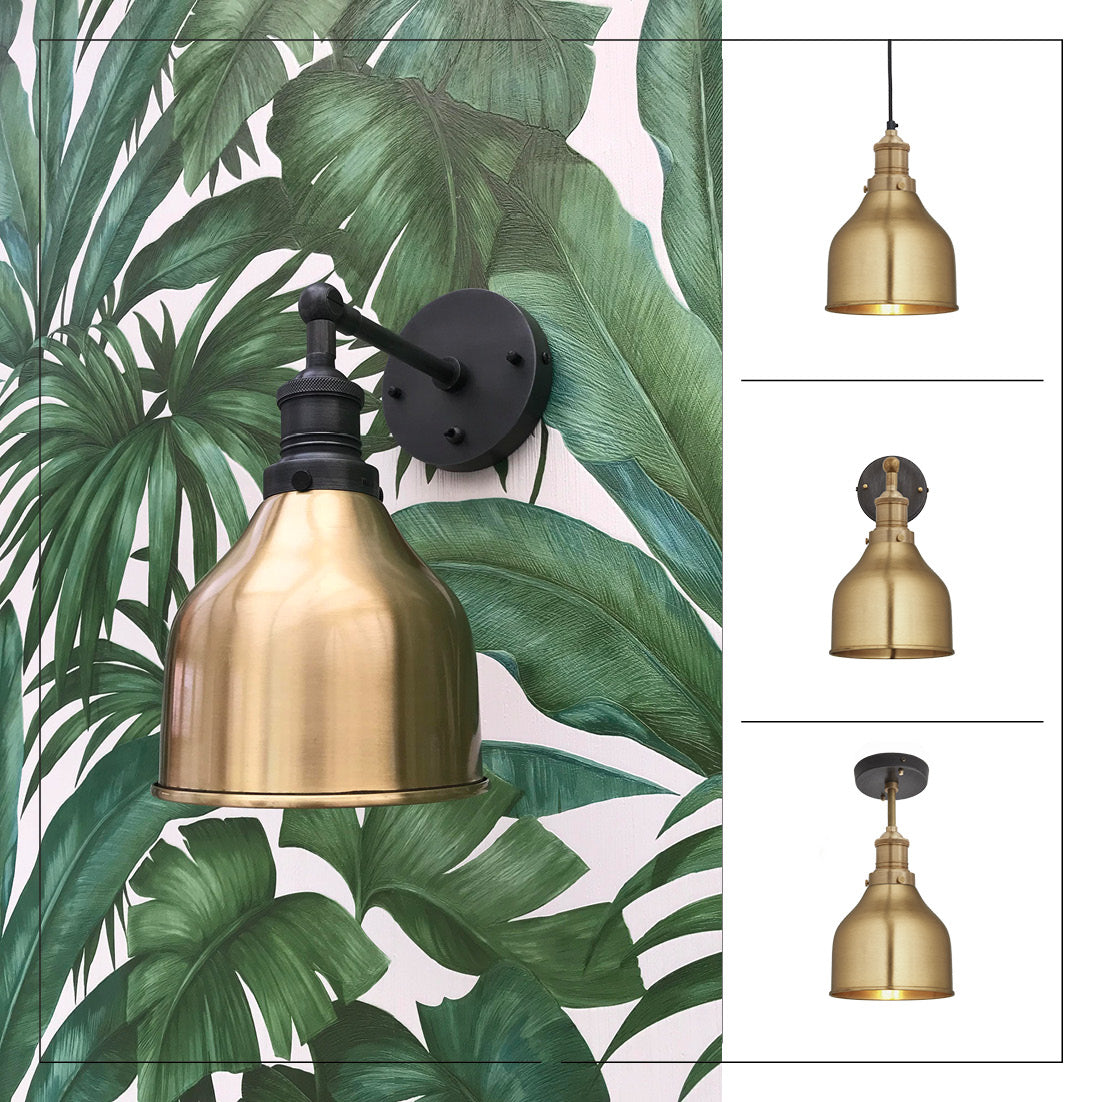 Brass industrial lights with leaf print wallpaper